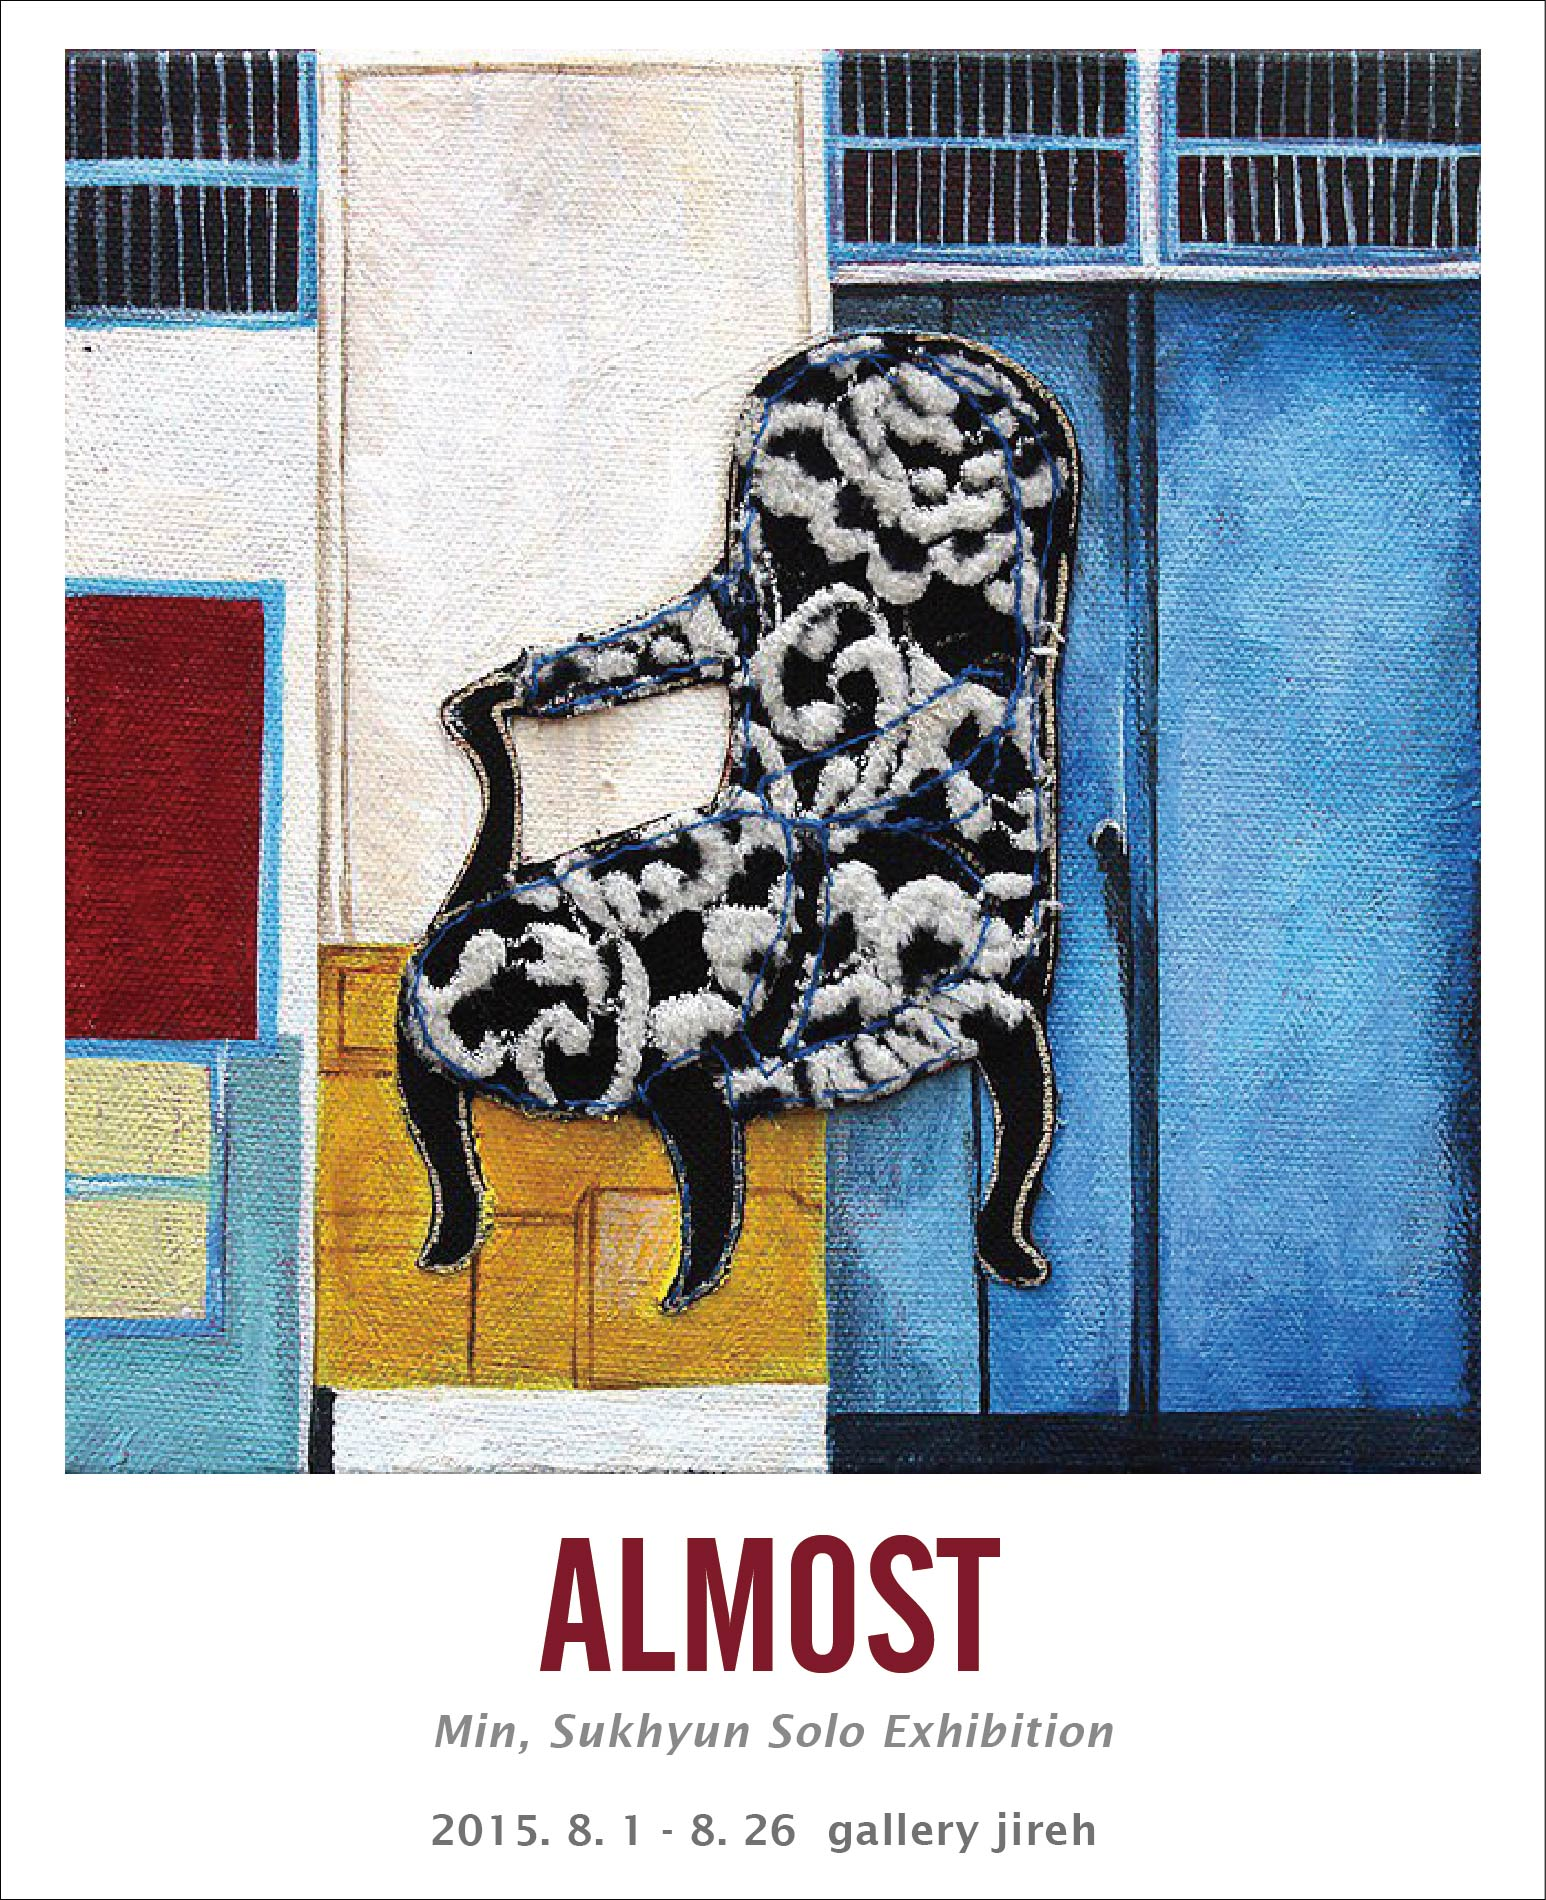 2015 ALMOST Min, sukhyun solo Exhibition